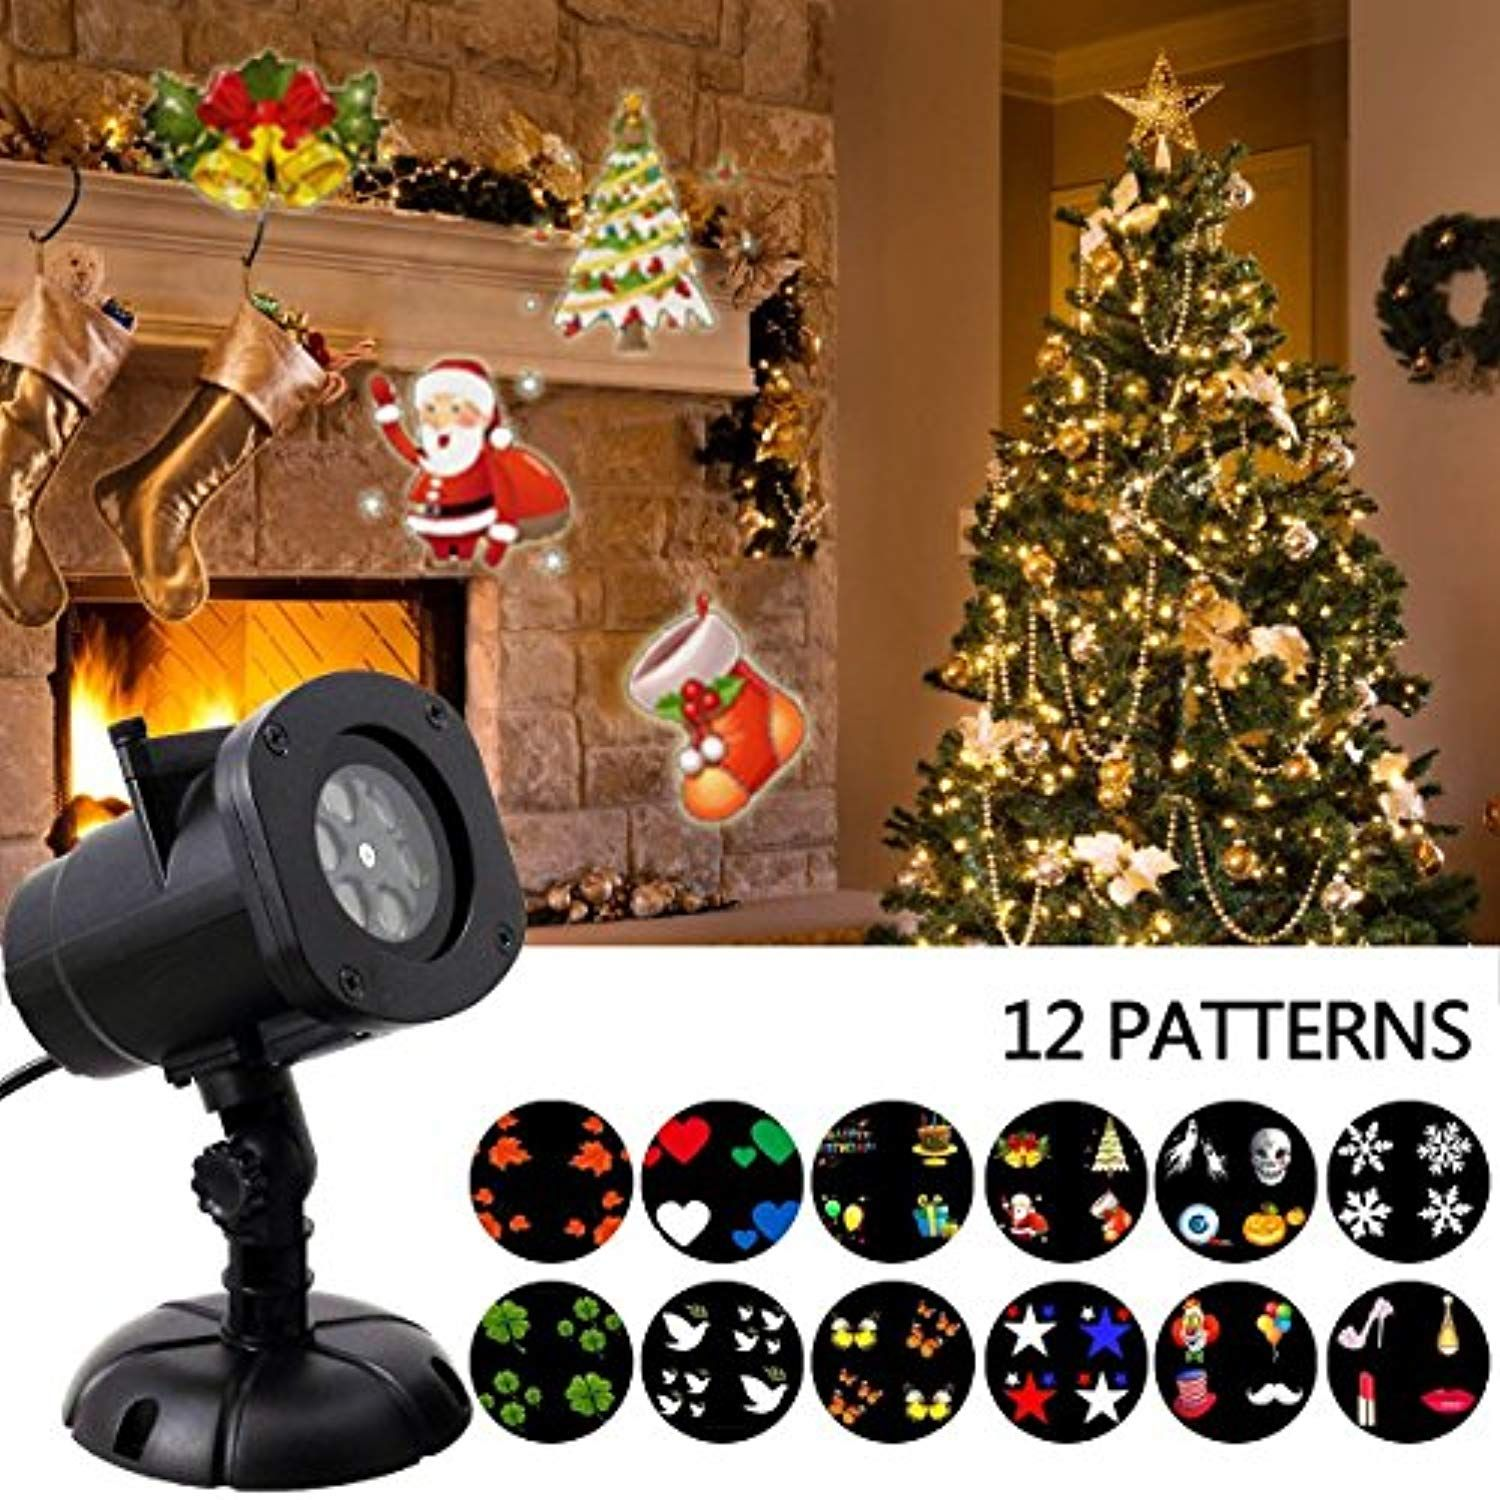 Christmas Light Projector Justup Led Landscape Projector Spotlight Patio Lawn Light With 12pcs Swit With Images Christmas Light Projector Lawn Lights Buy Christmas Lights